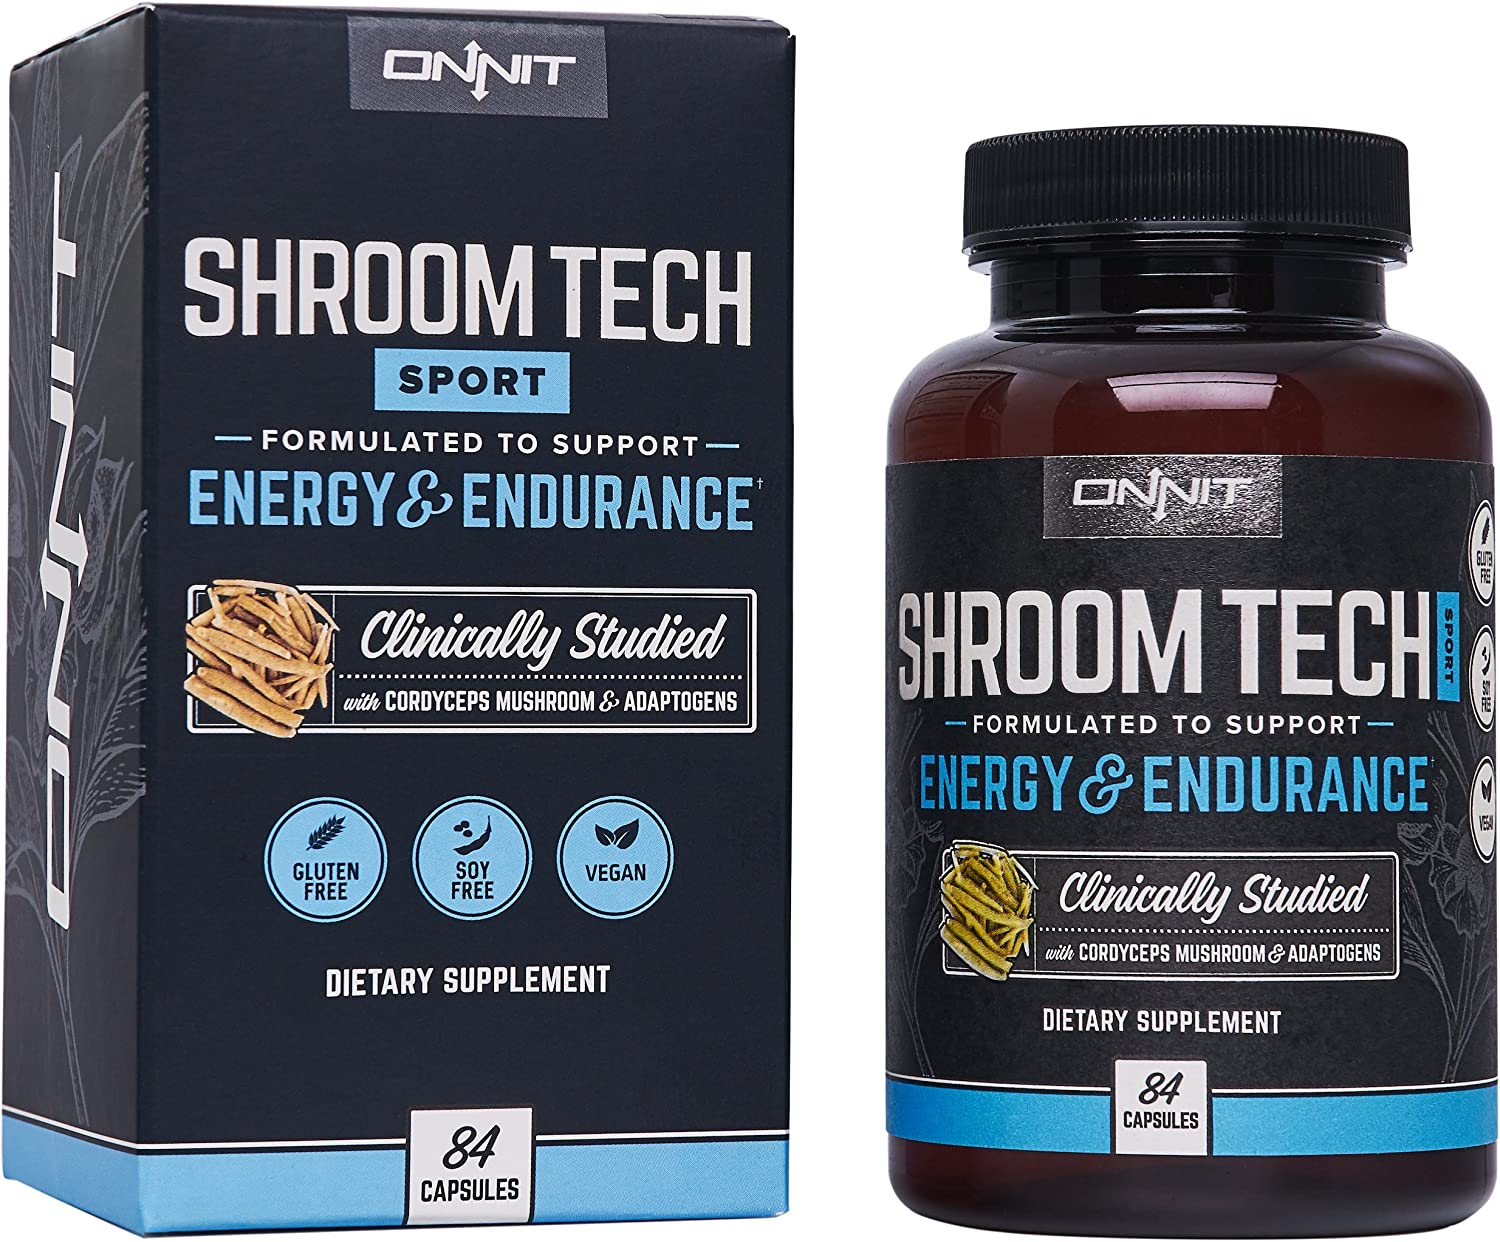 Onnit Shroom Tech Sport: Clinically Studied Preworkout Supplement with Cordyceps Mushroom (84ct): Health & Personal Care